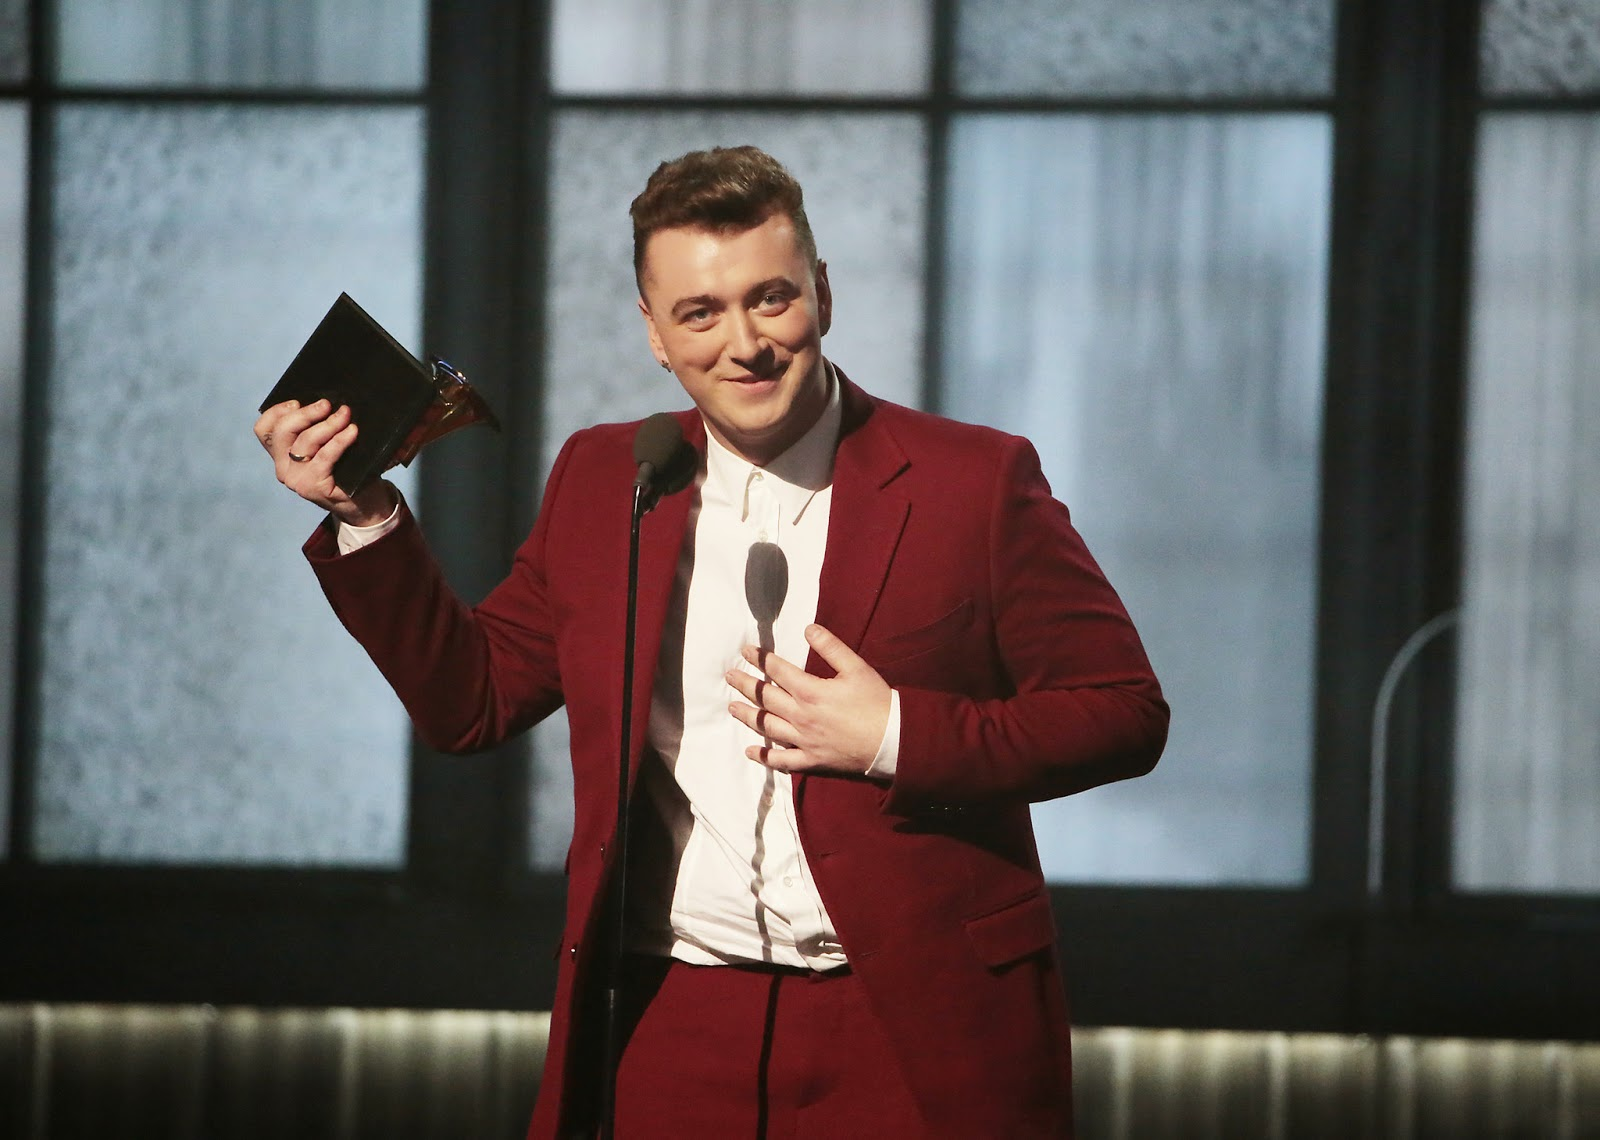 Grammys 2015 winners: Best songs, albums, artists